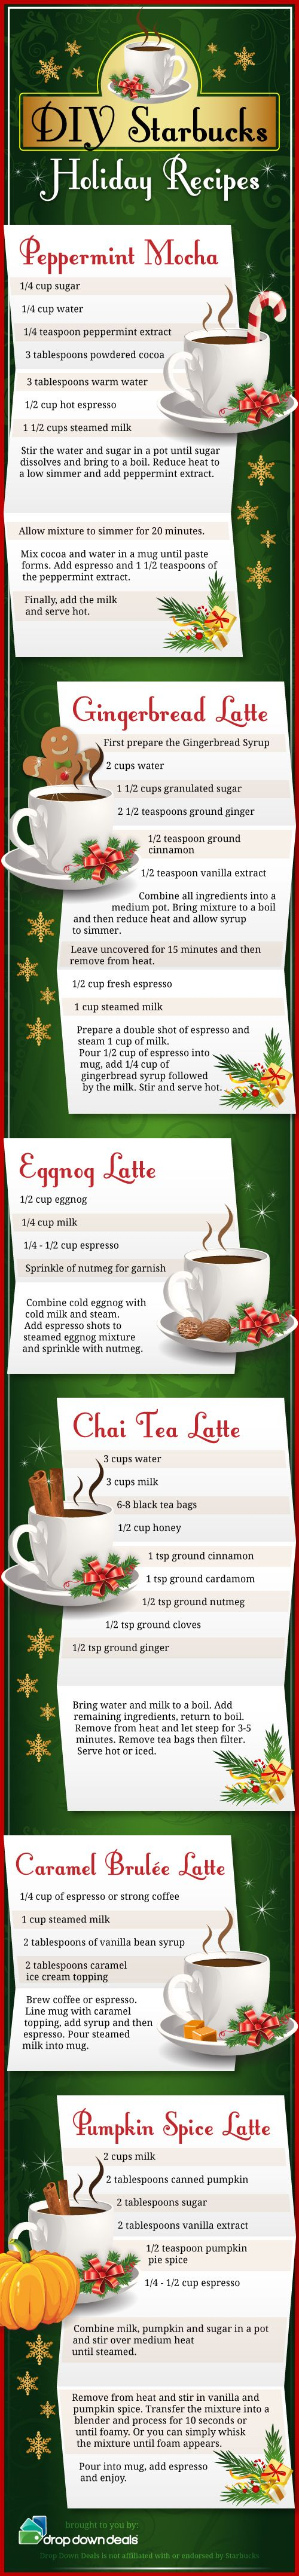 DIY Starbucks holiday drink recipes perfect for a cold winter night at home.